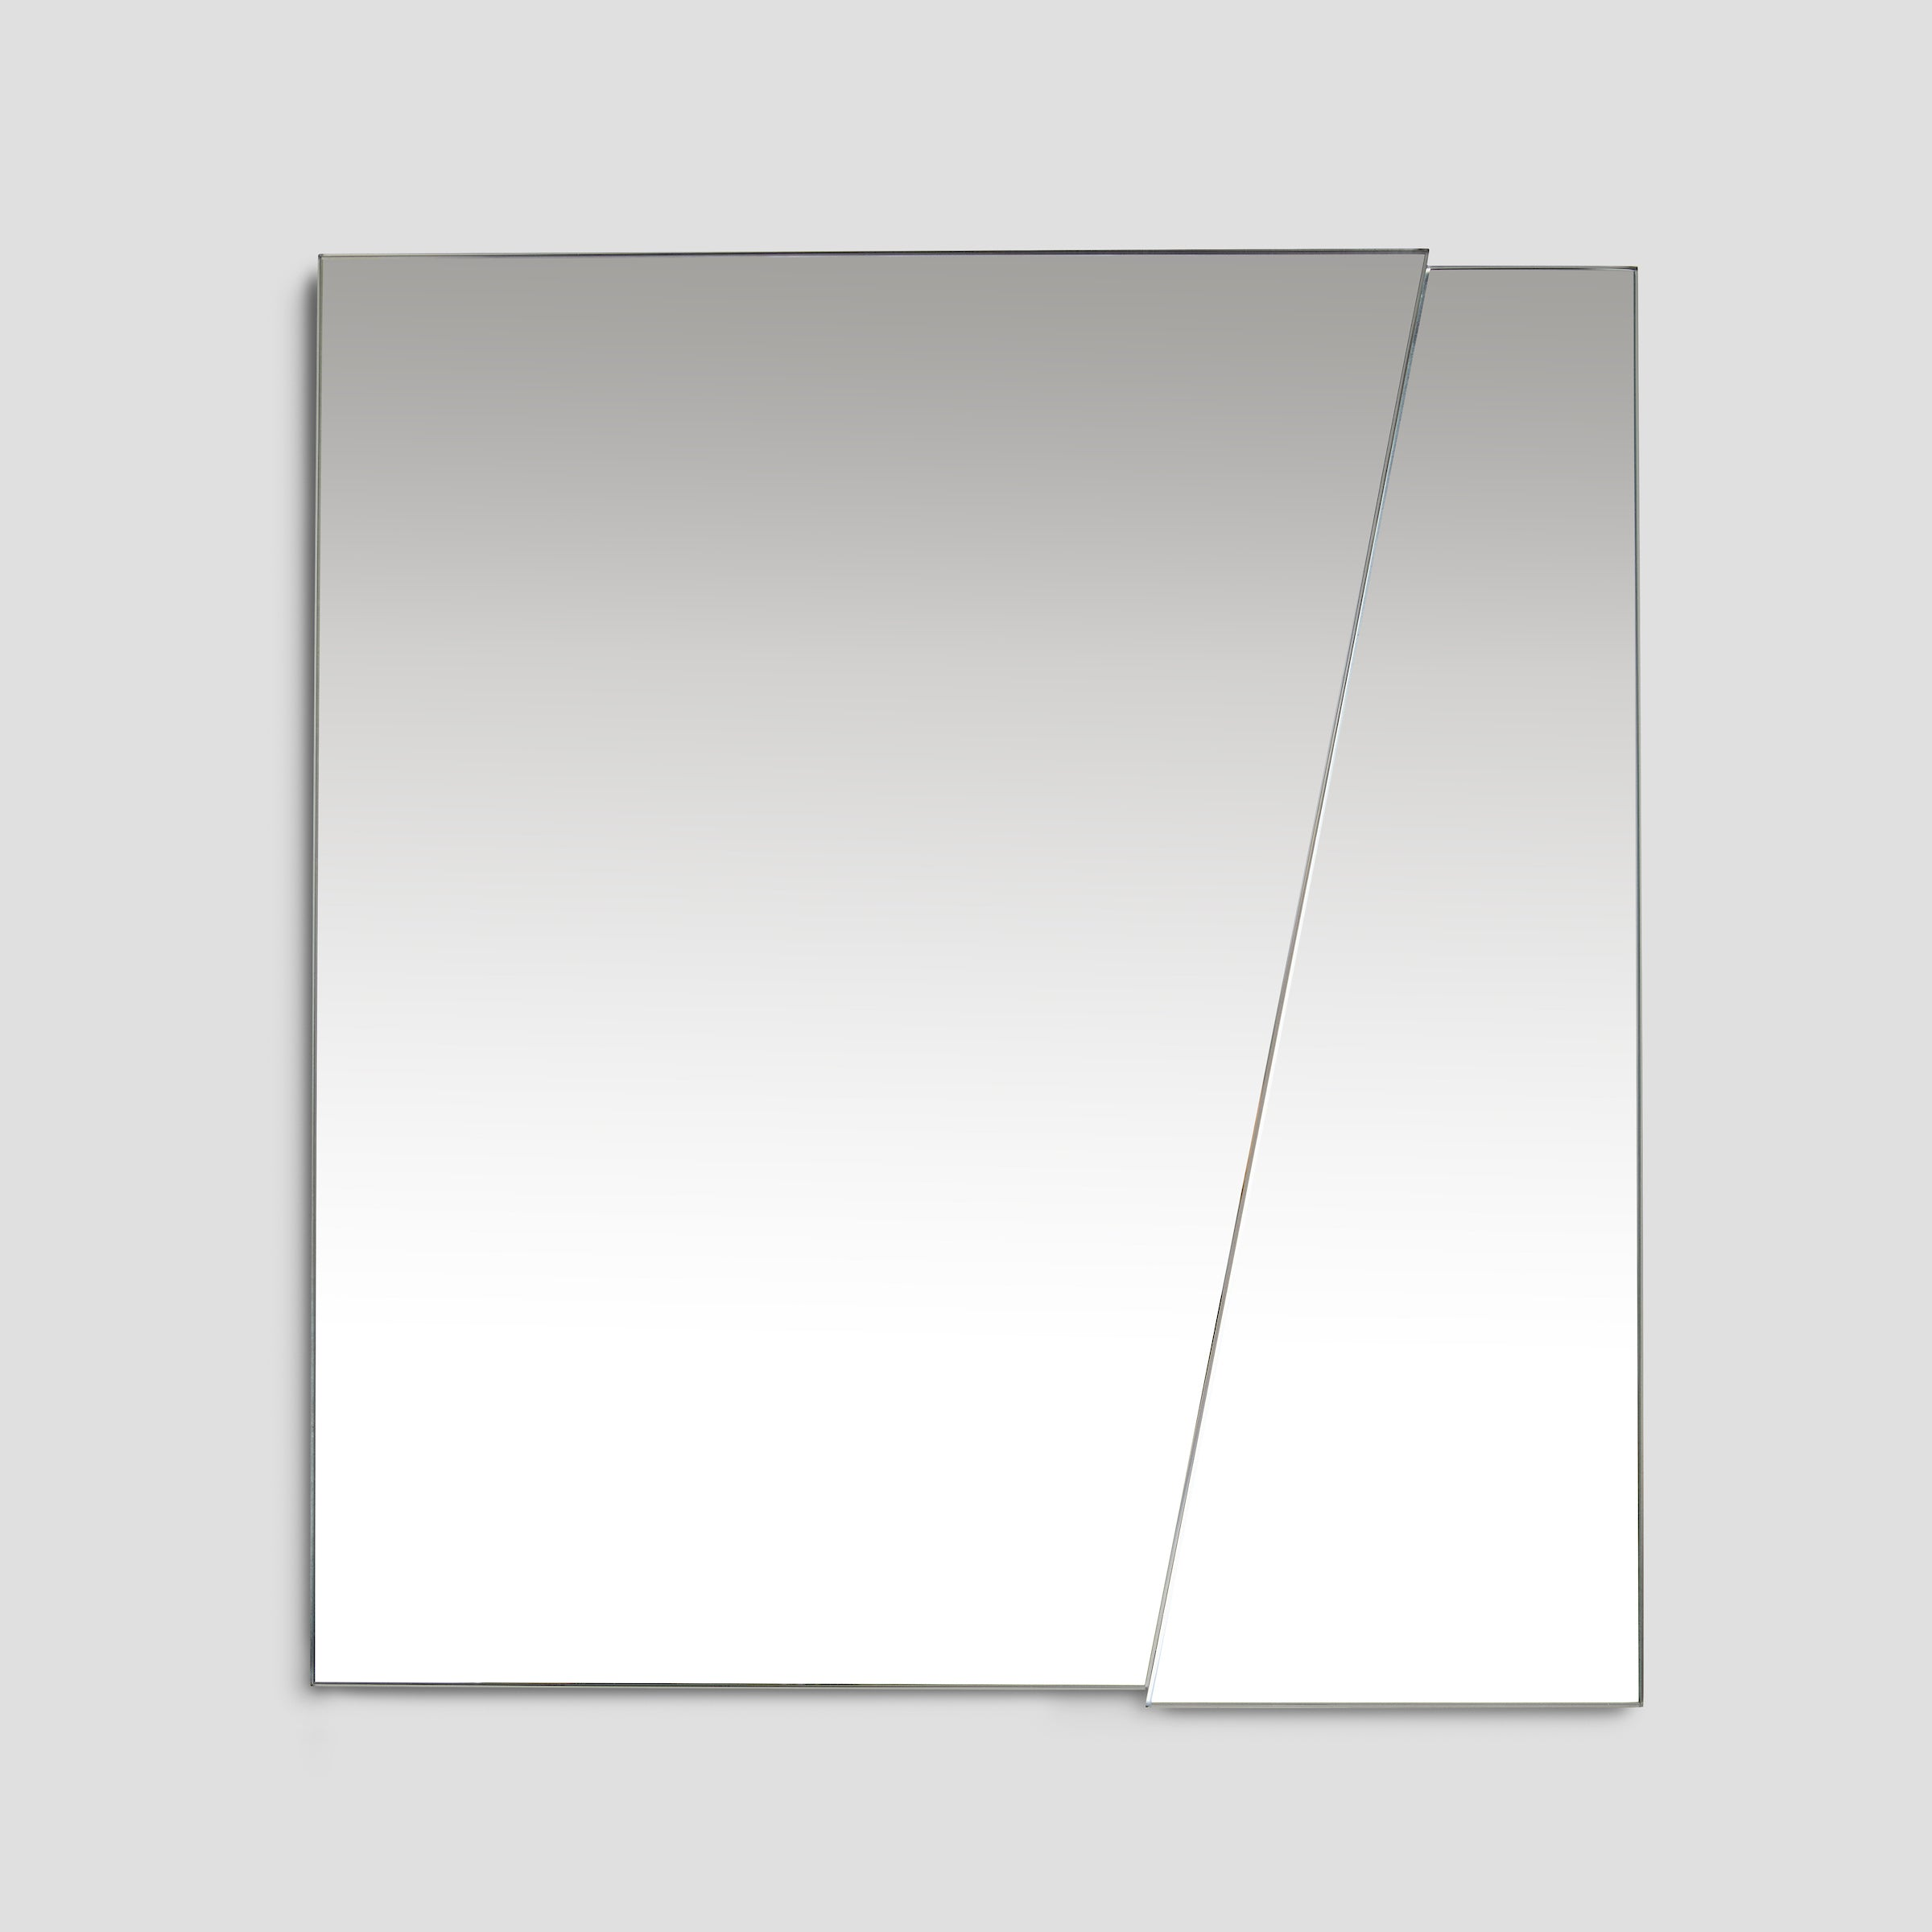 Front view of the modern minimalist ICEBERG mirror, clear mirror mounted on MDF panel, available in two practical dimensions, easy mounting using a pair of d-hooks, designed and made in Montreal Canada.